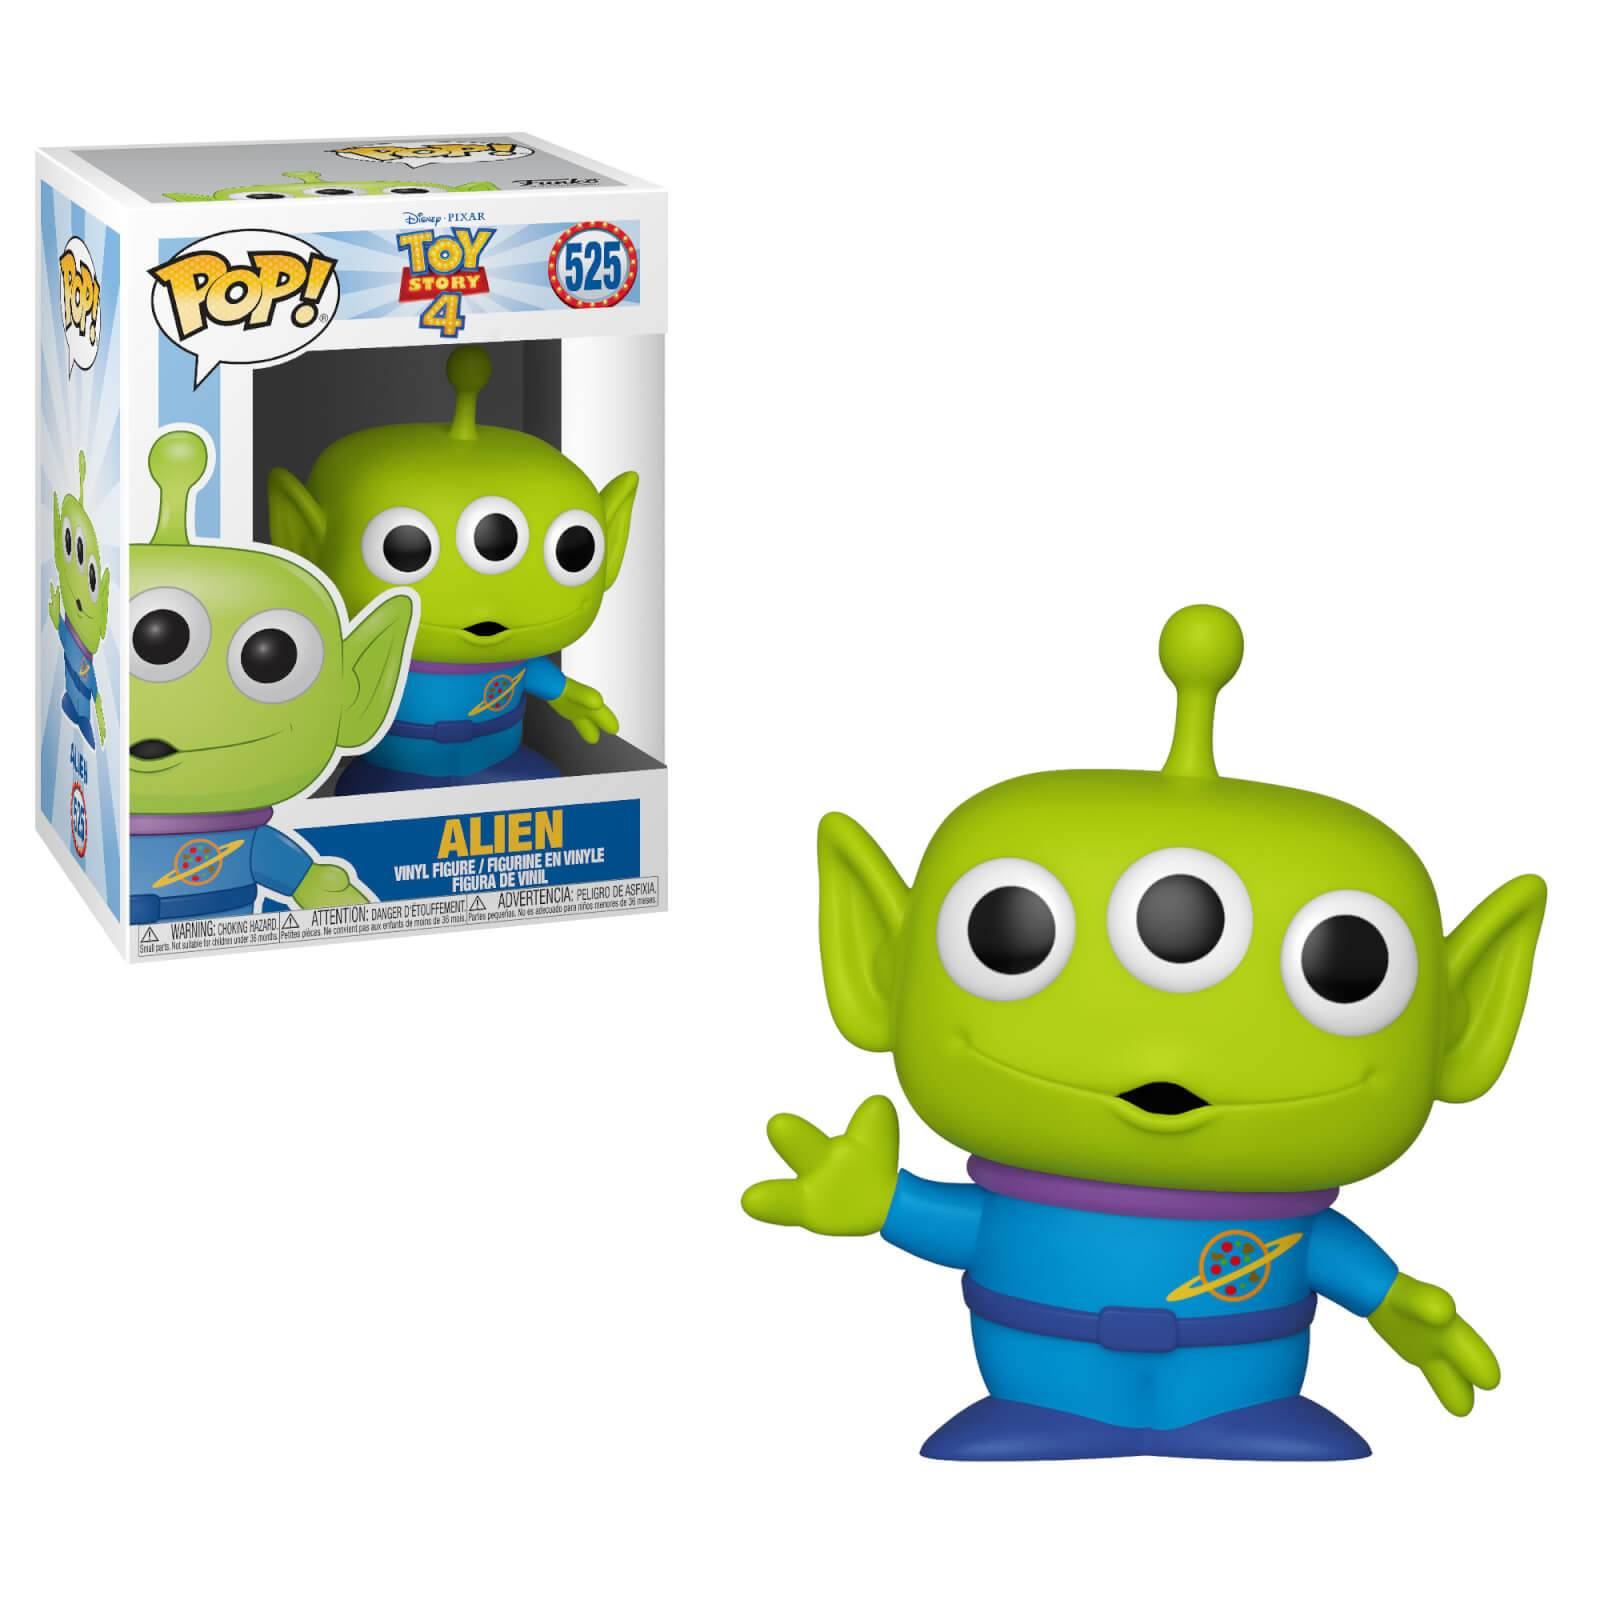 Pop! Vinyl Figurine Pop! Alien - Toy Story 4